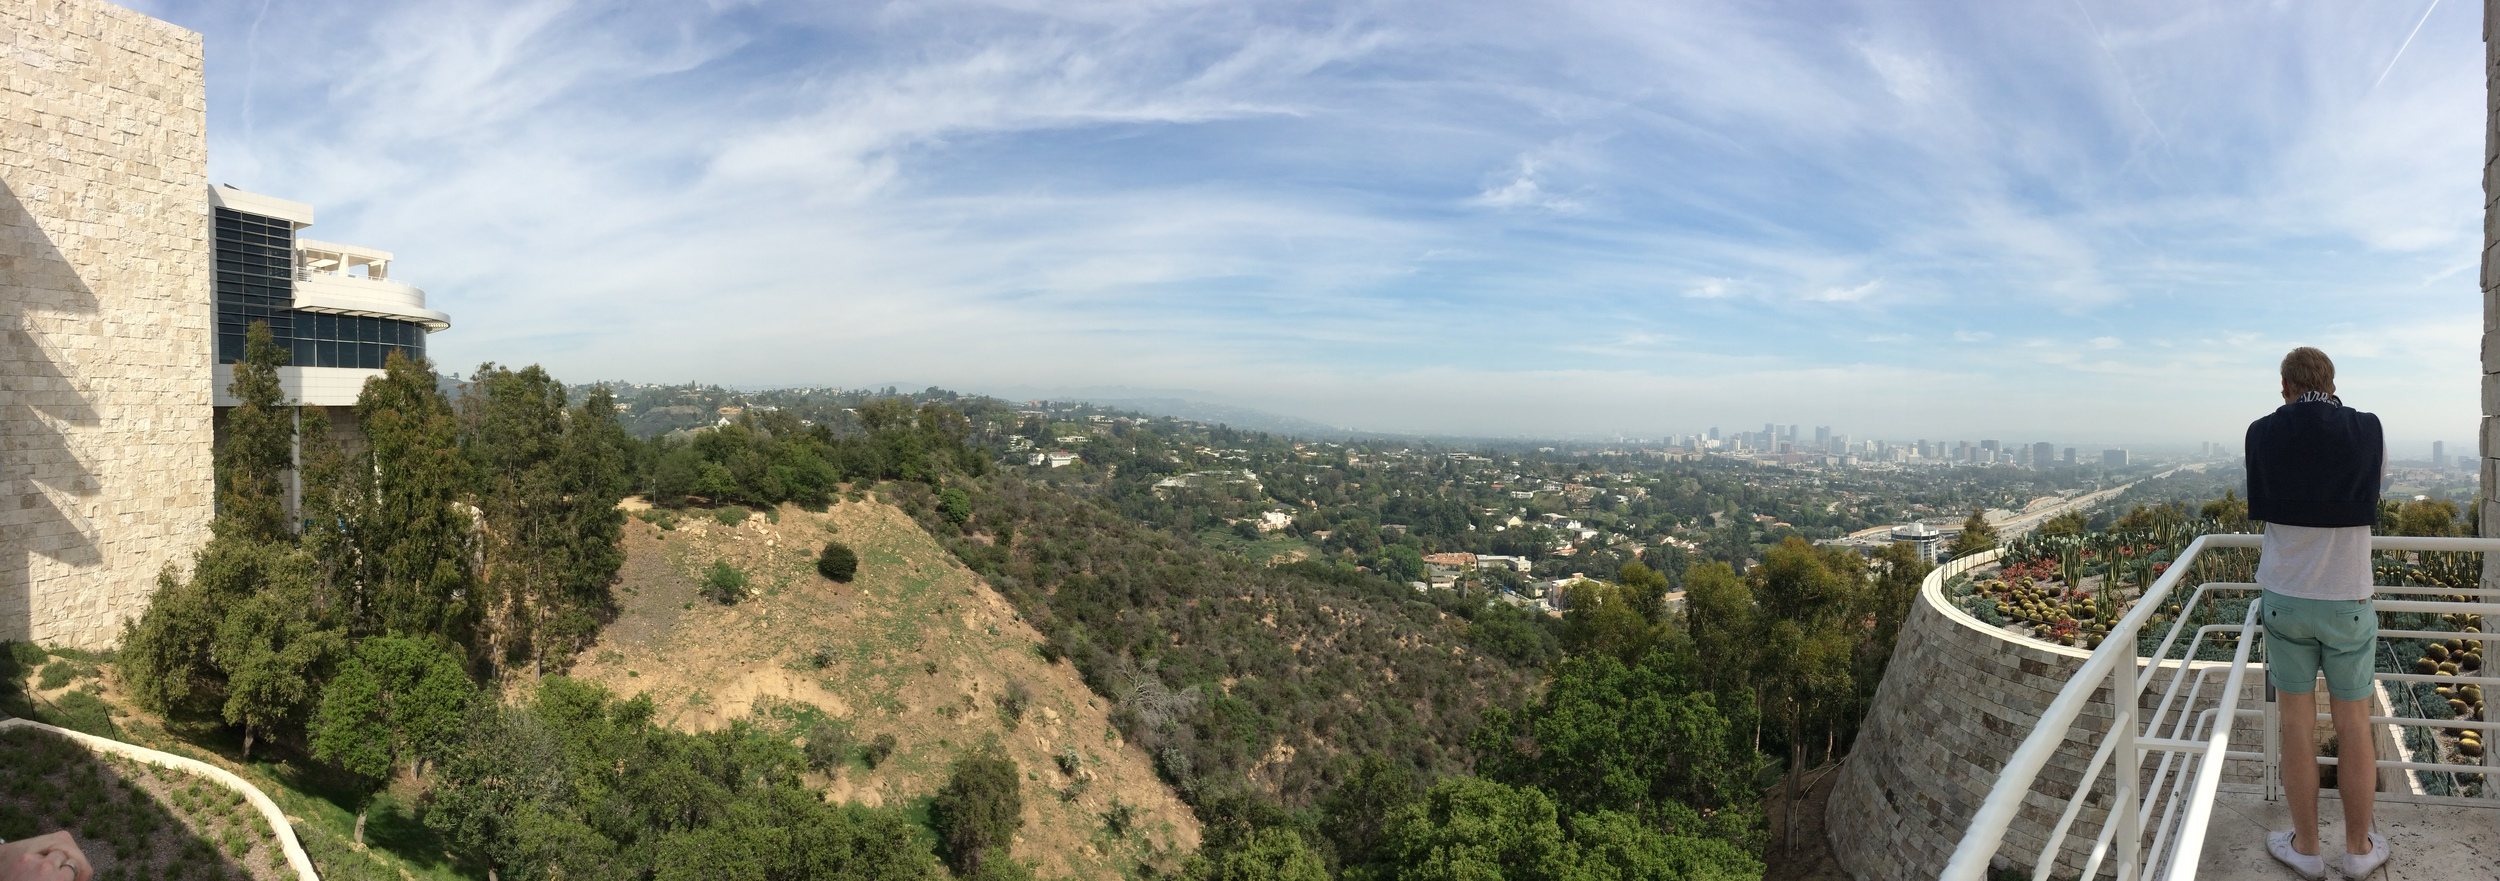 The view from the Getty Museum in Los Angeles.